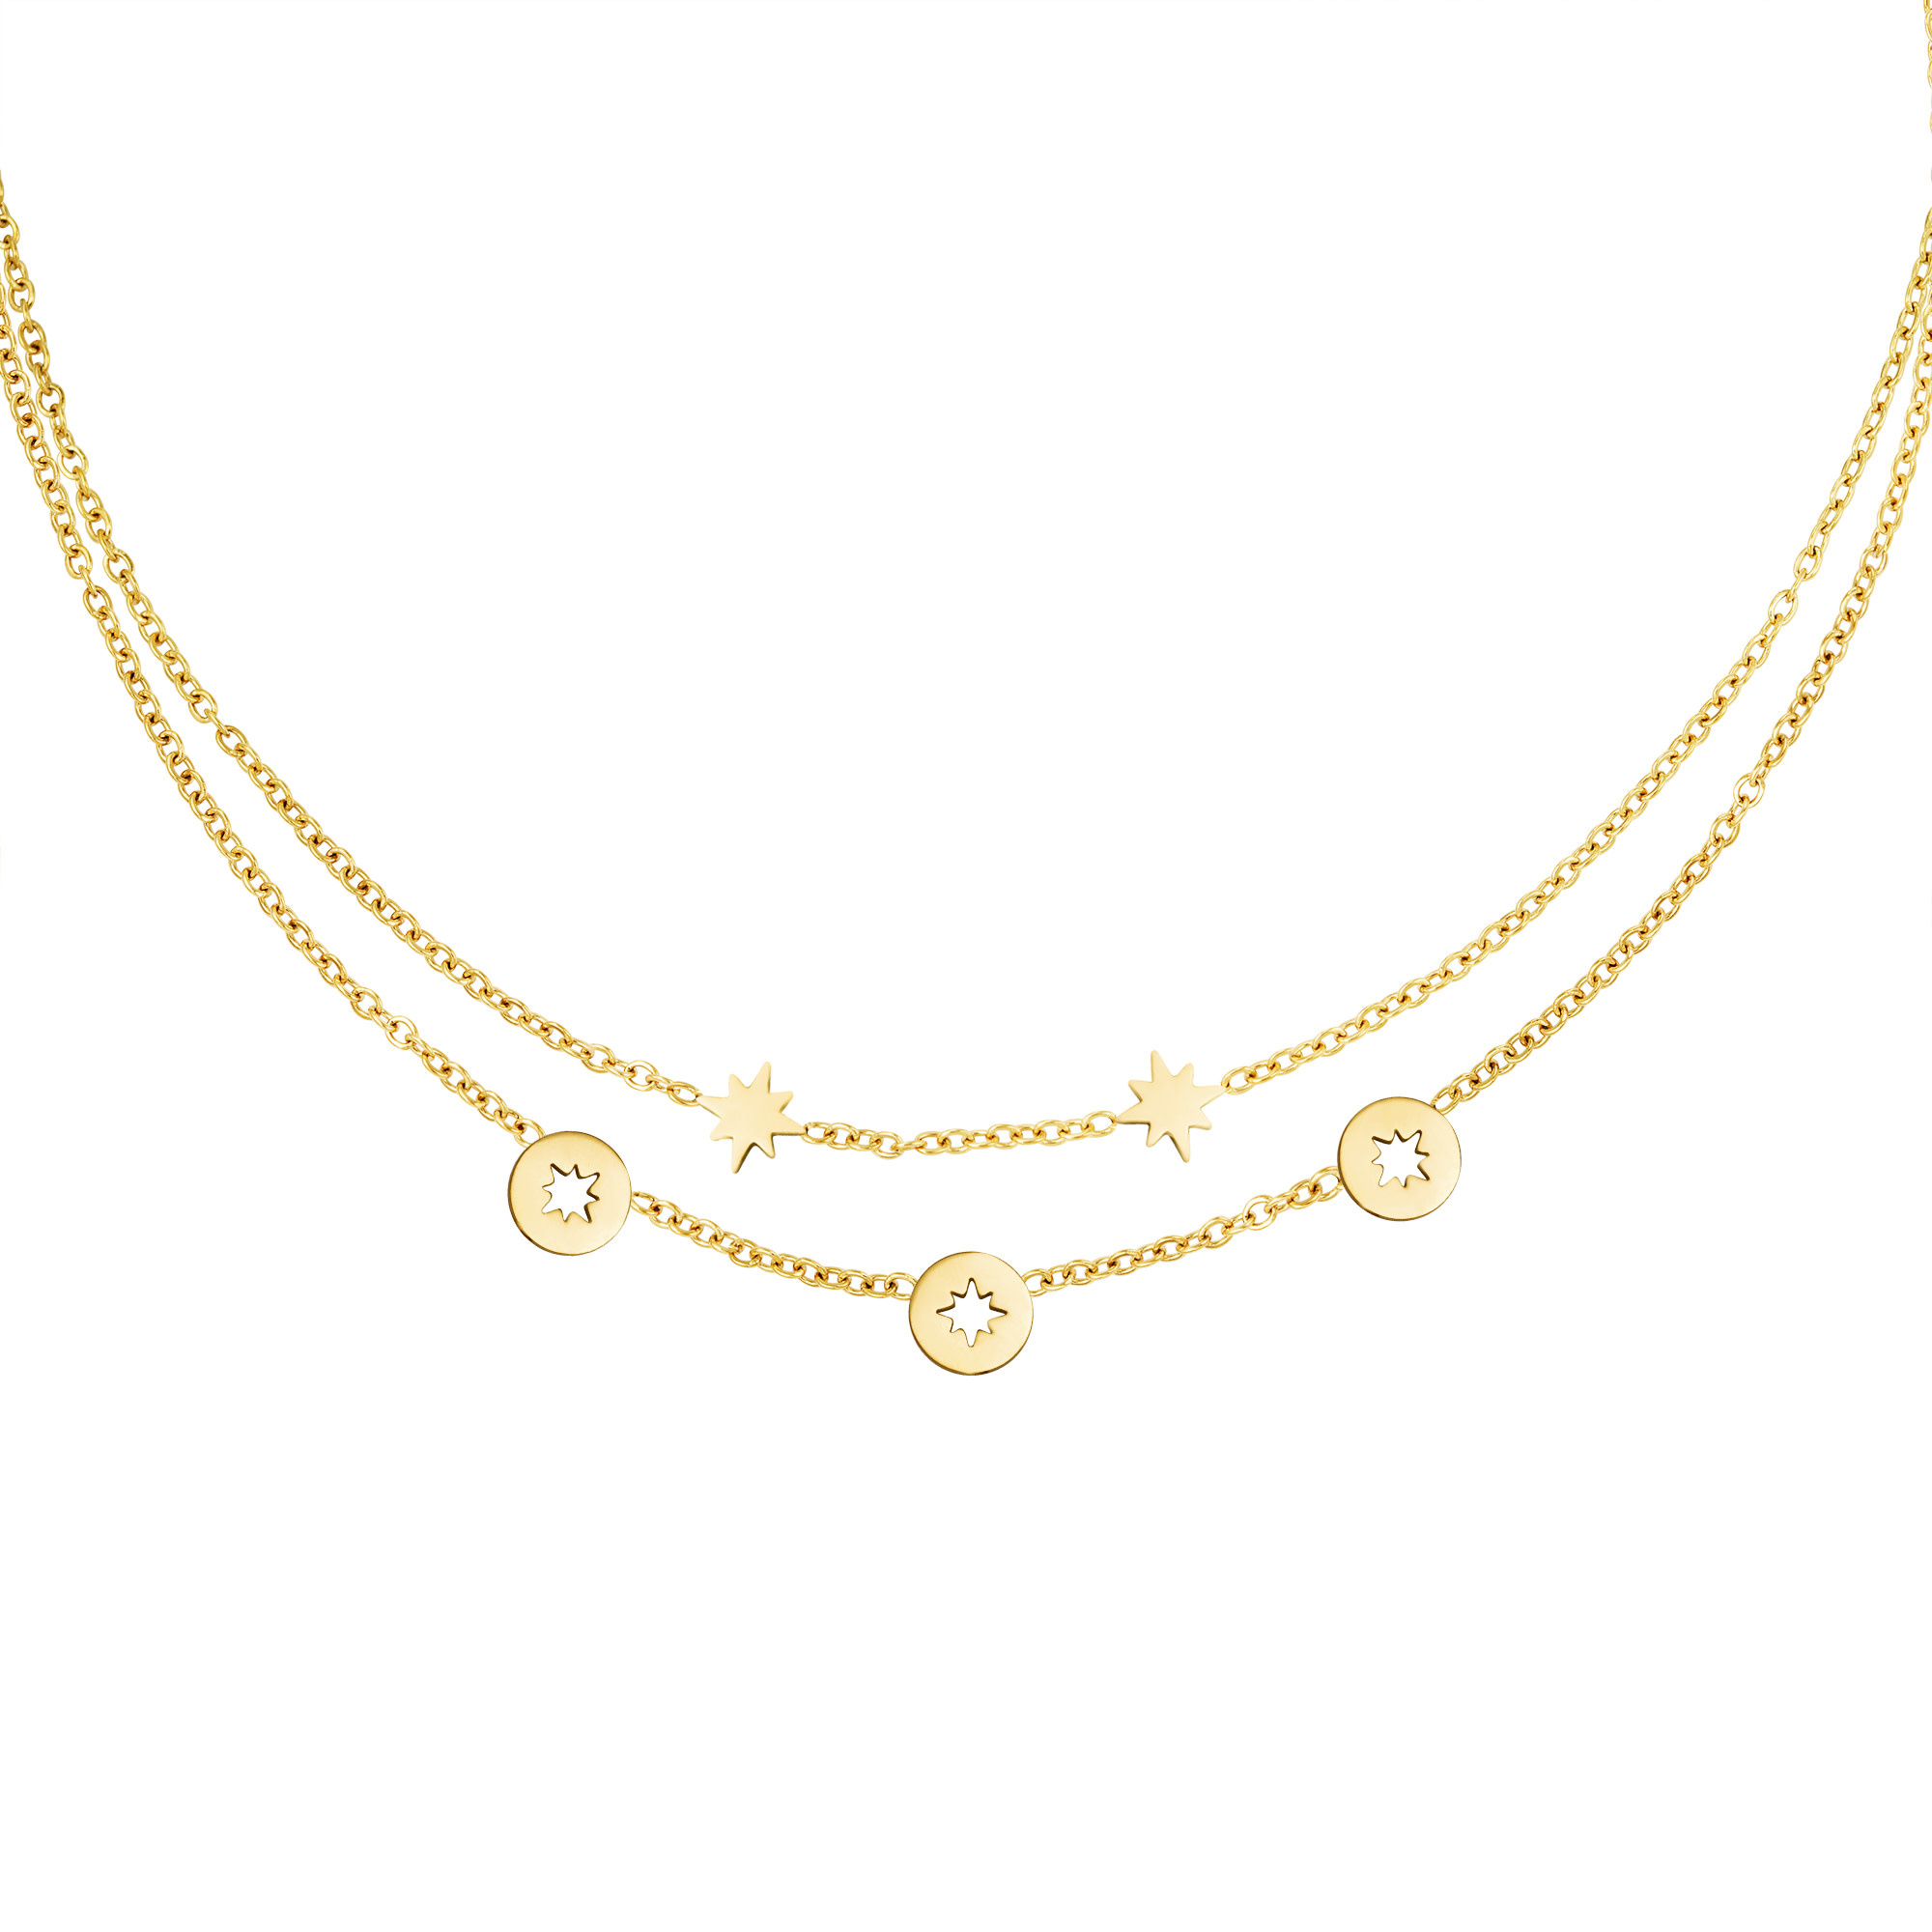 With love Necklace starstruck gold